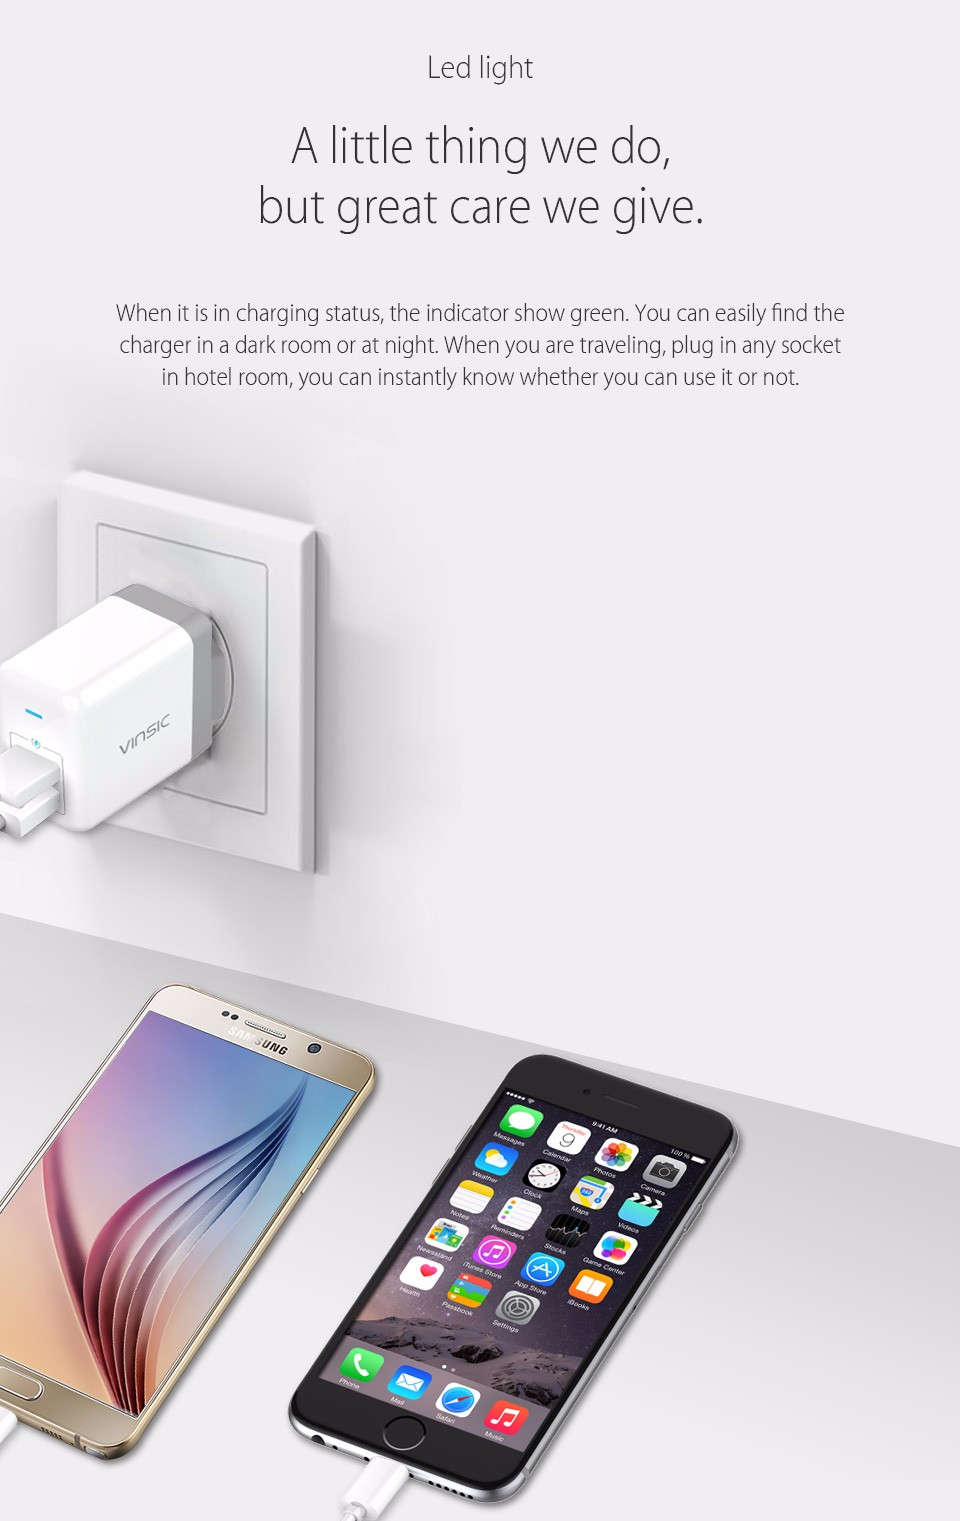 Vinsic 4.8A EU/US Plug 2 Ports Dual USB Wall Charger Smart Fast Mobile Phone Travel Charger for iPhone Samsung